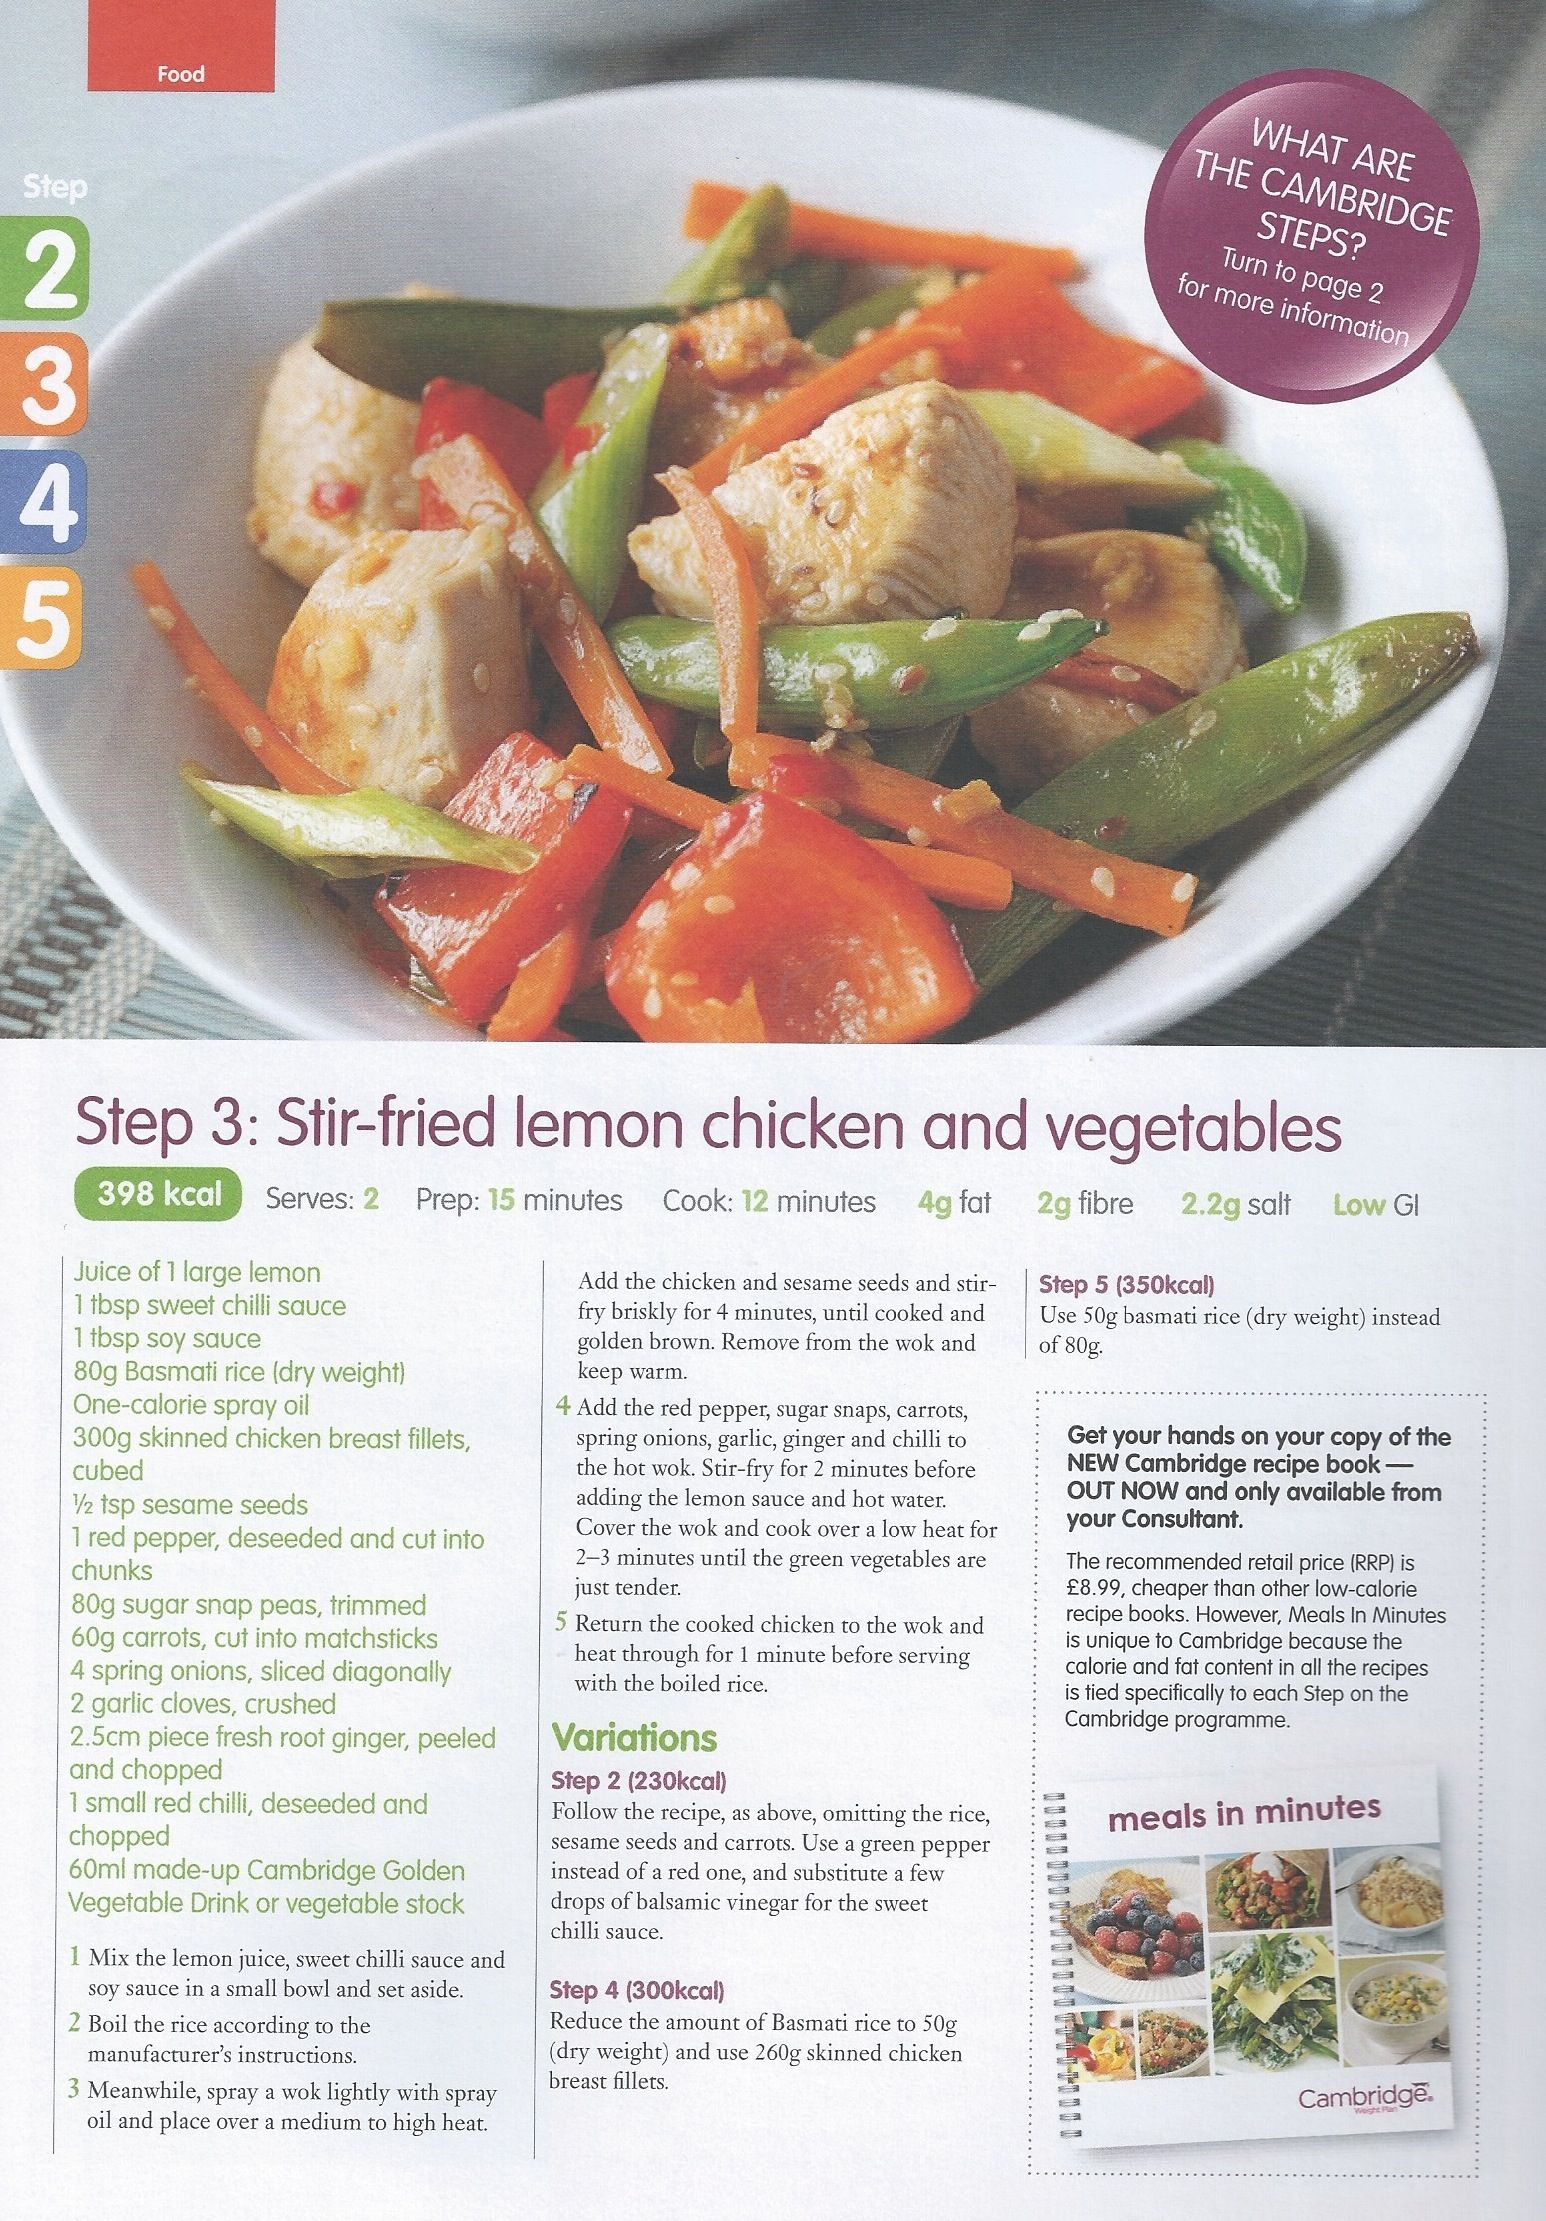 Stir fried lemon chicken and vegetables step 3 recipes and more recipies forumfinder Images